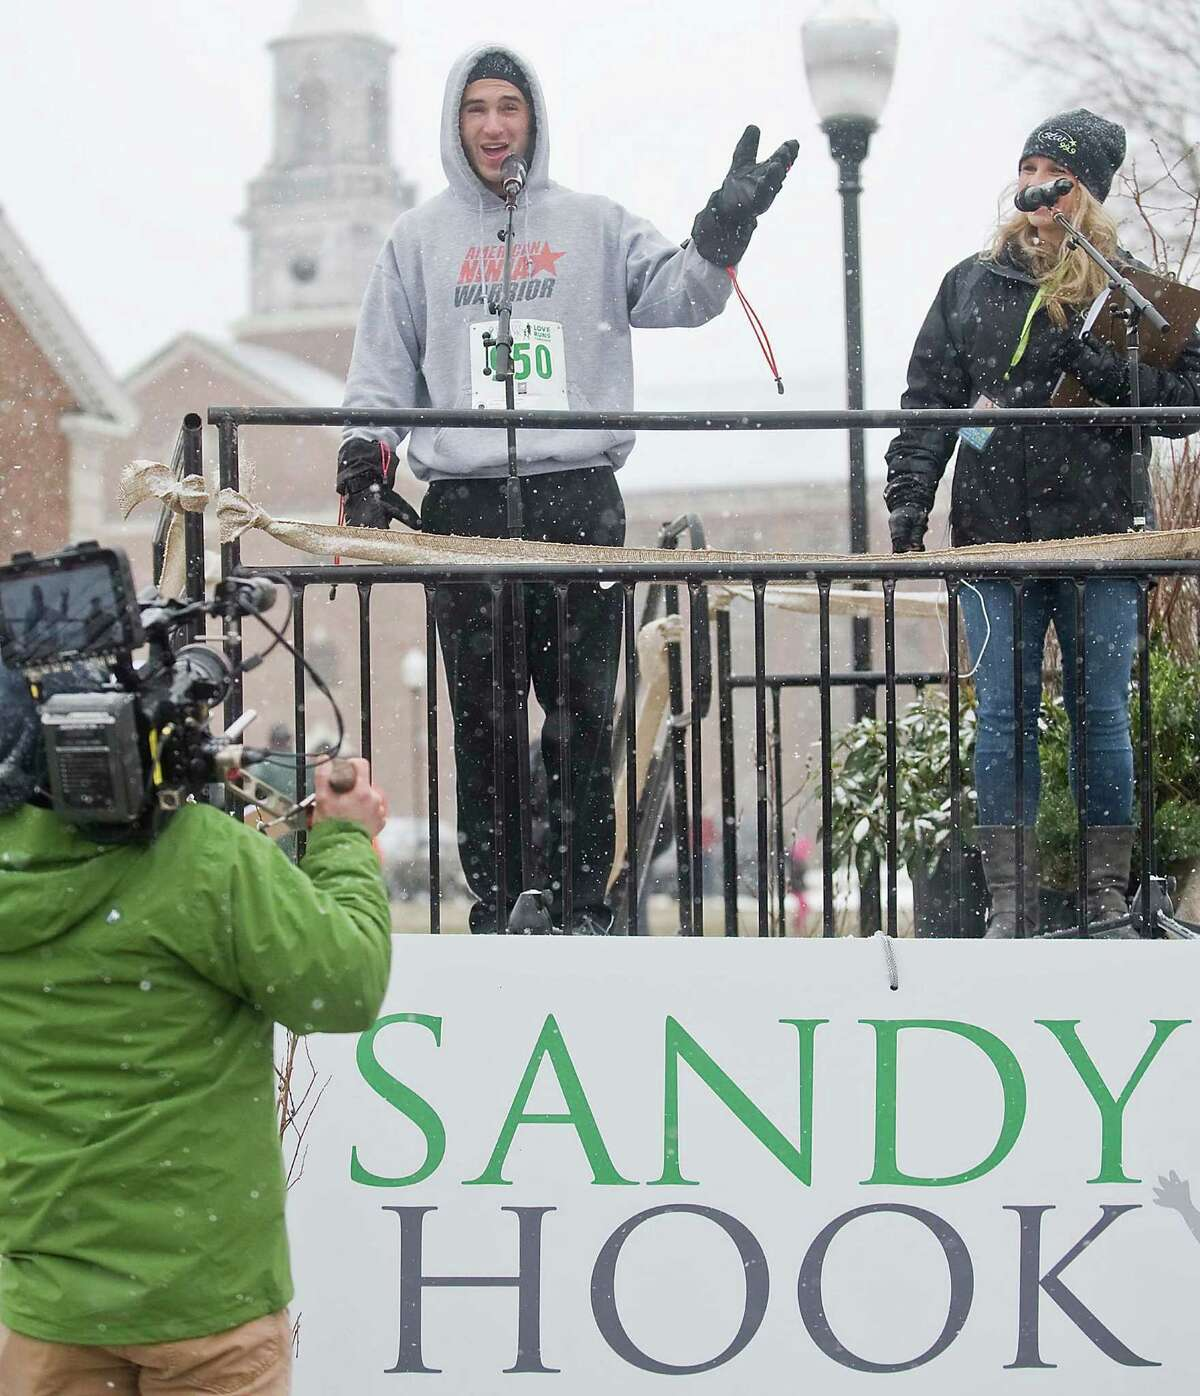 NBC's American Ninja Warrior show competitor Joe Moravsky welcomes the runners in the 3rd annual Sandy Hook 5K race on the Fairfield Hills Campus in Newtown. Saturday, March 28, 2015